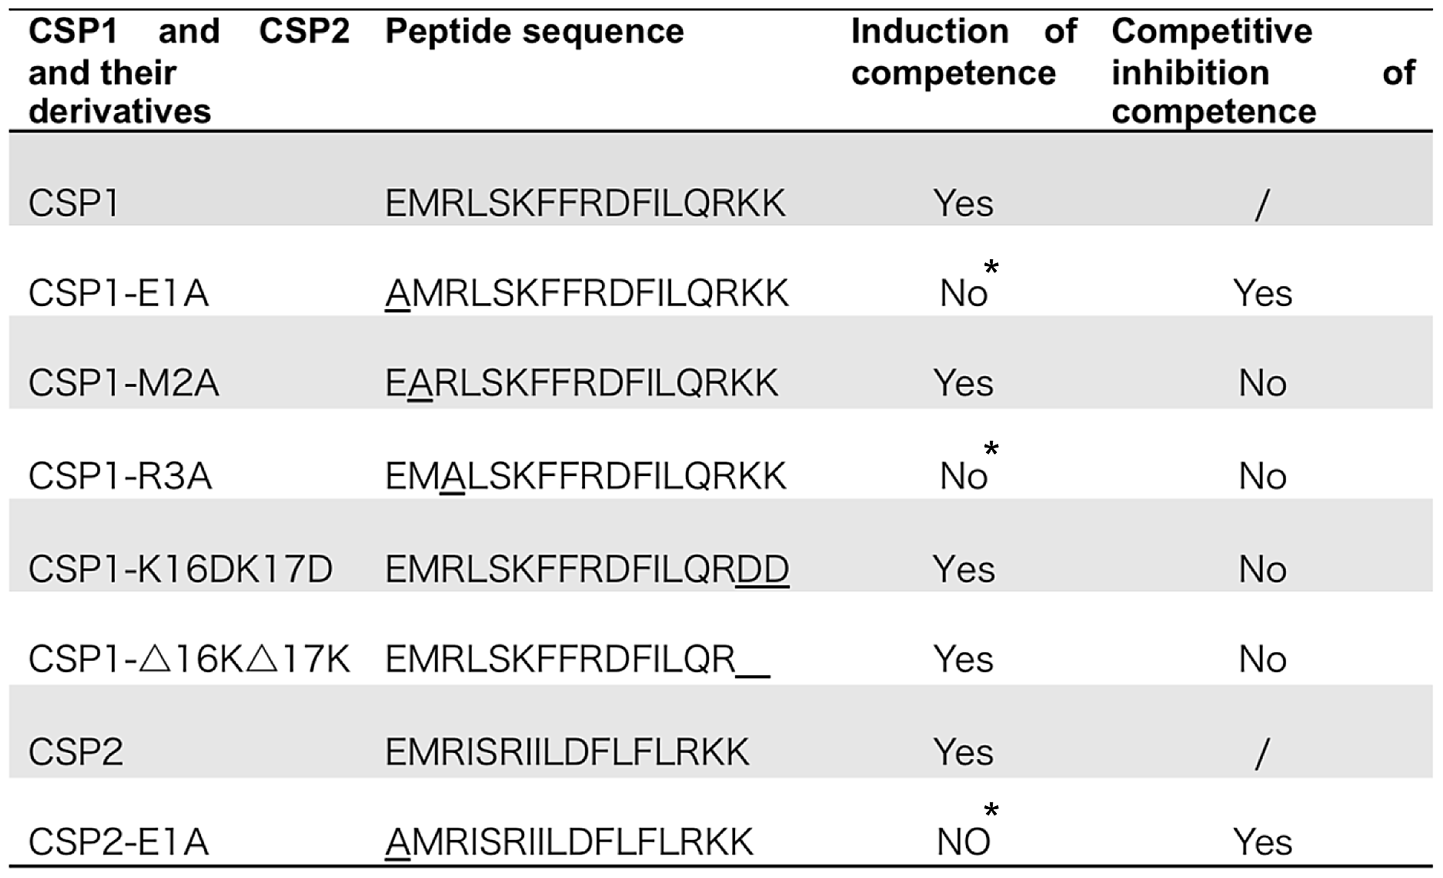 Amino acid sequences of CSP1 and CSP2, and their analogues.